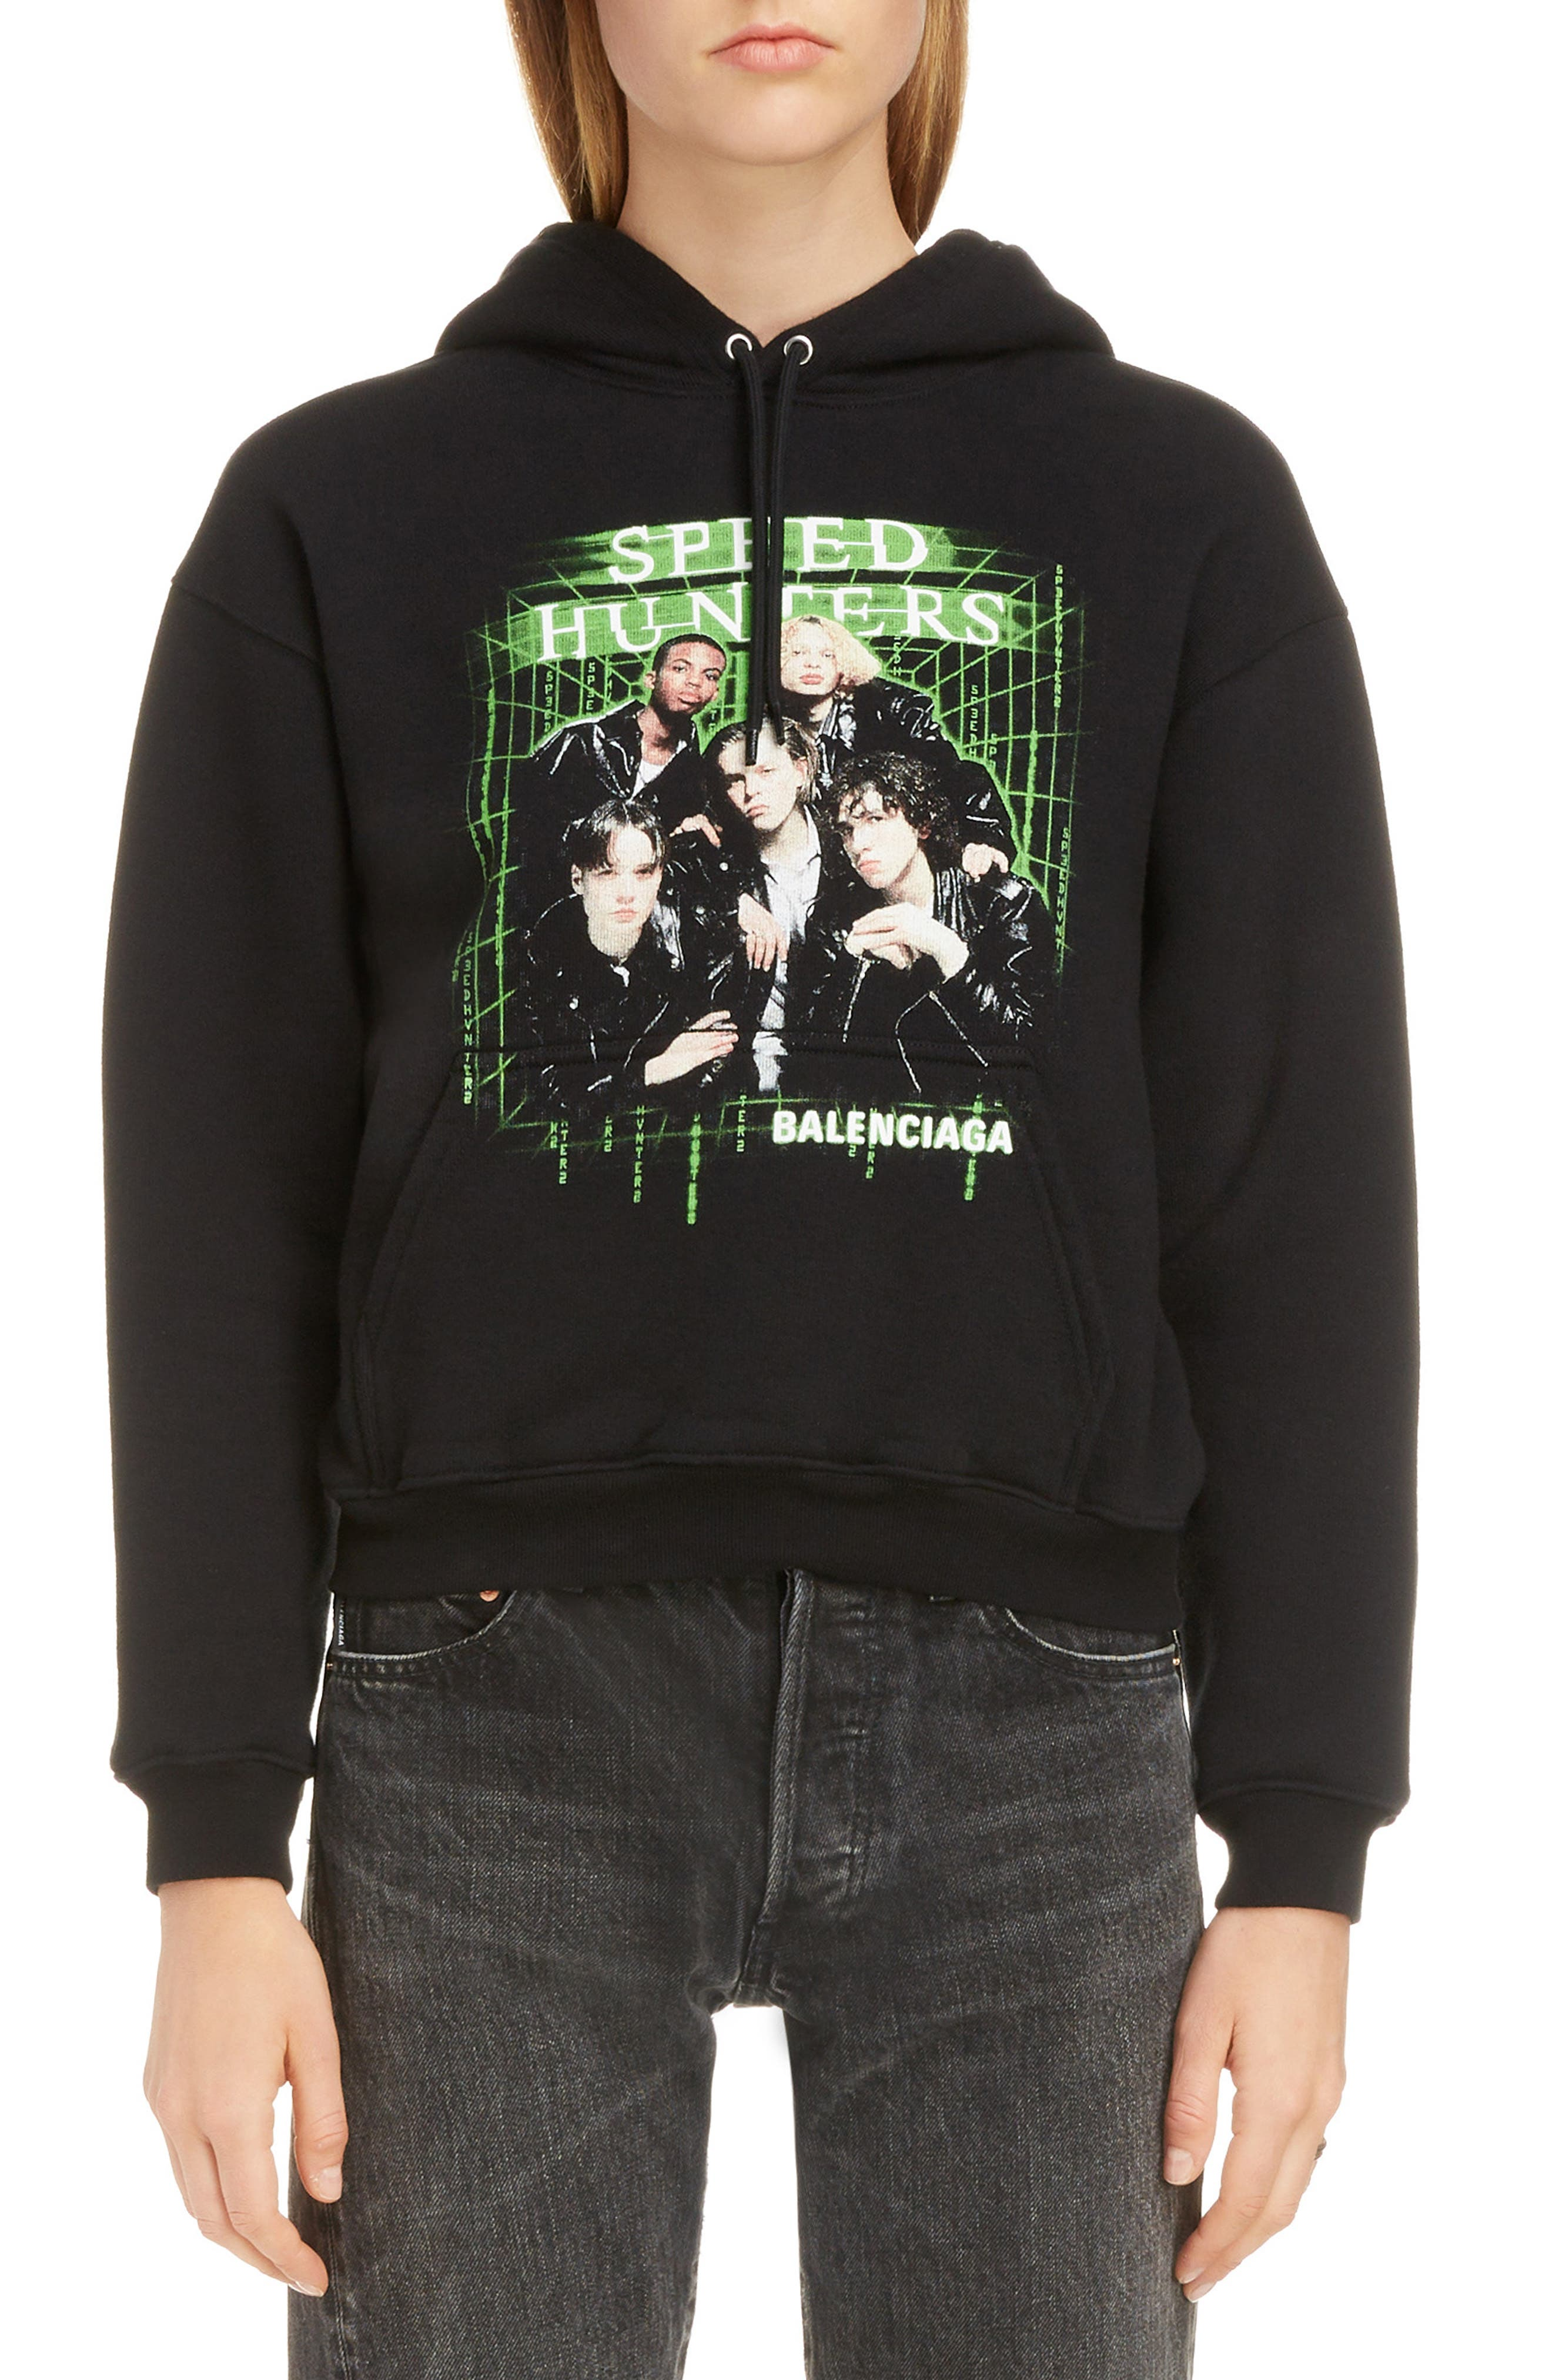 BALENCIAGA, Boy Band Print Hoodie, Main thumbnail 1, color, BLACK